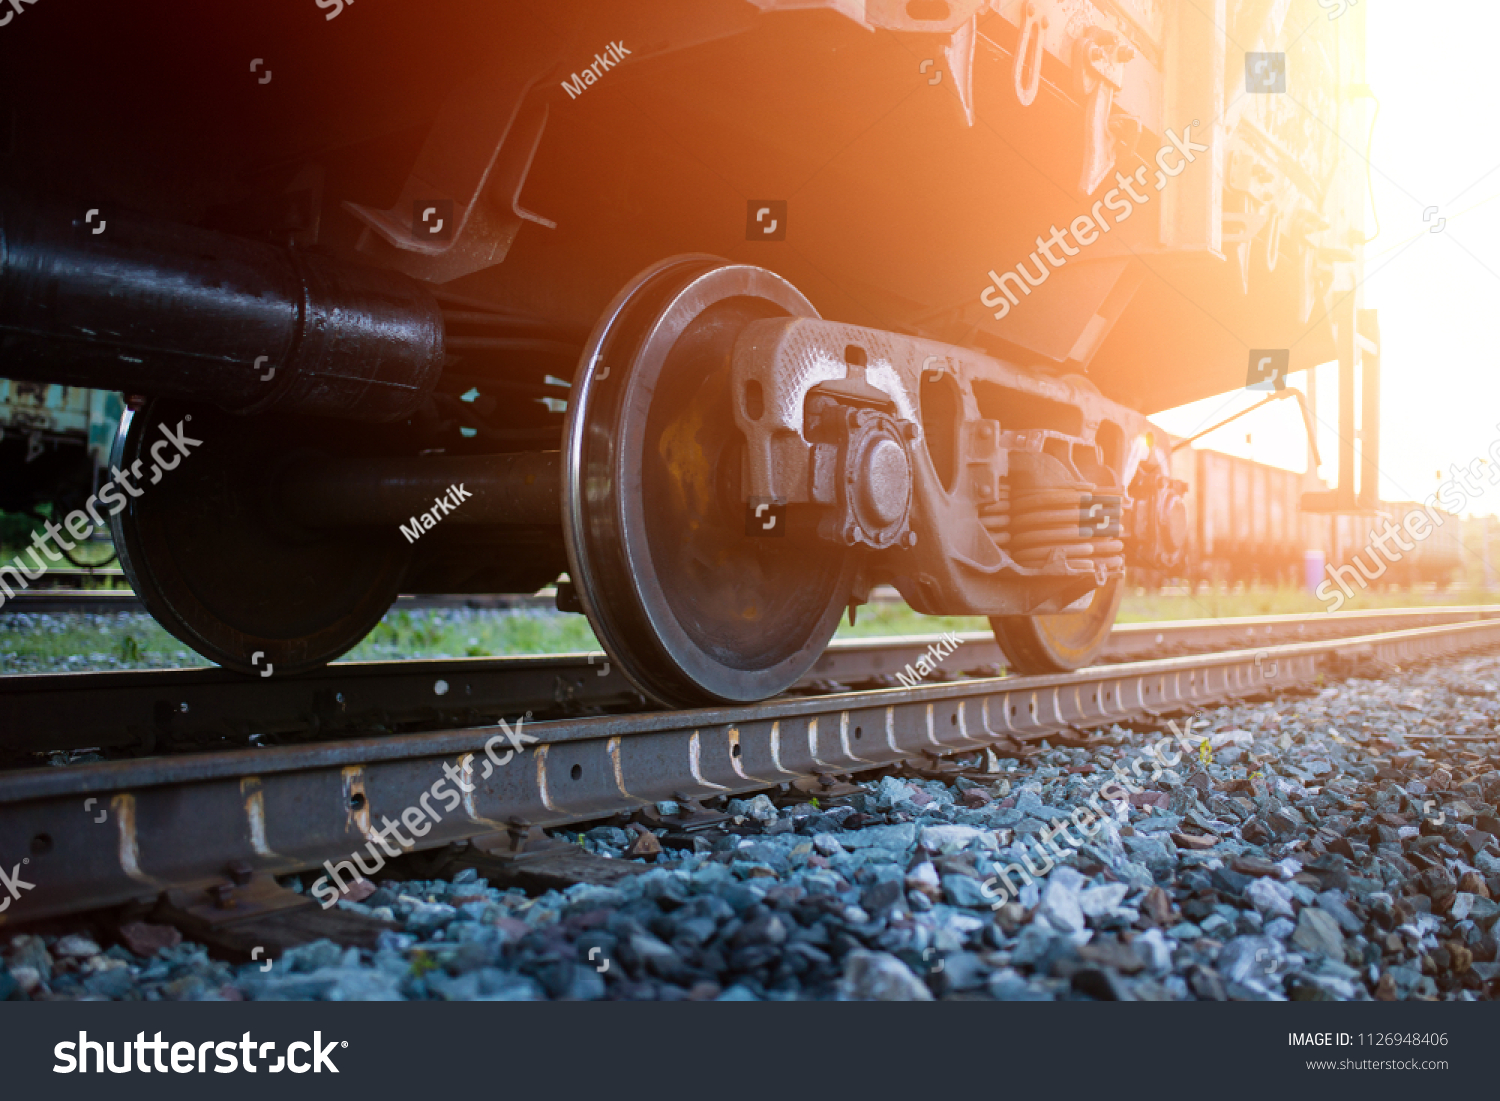 The railway engine of a freight locomotive that crosses the desert during sunset. Large transport of goods in tanks by rail. railway rails #1126948406